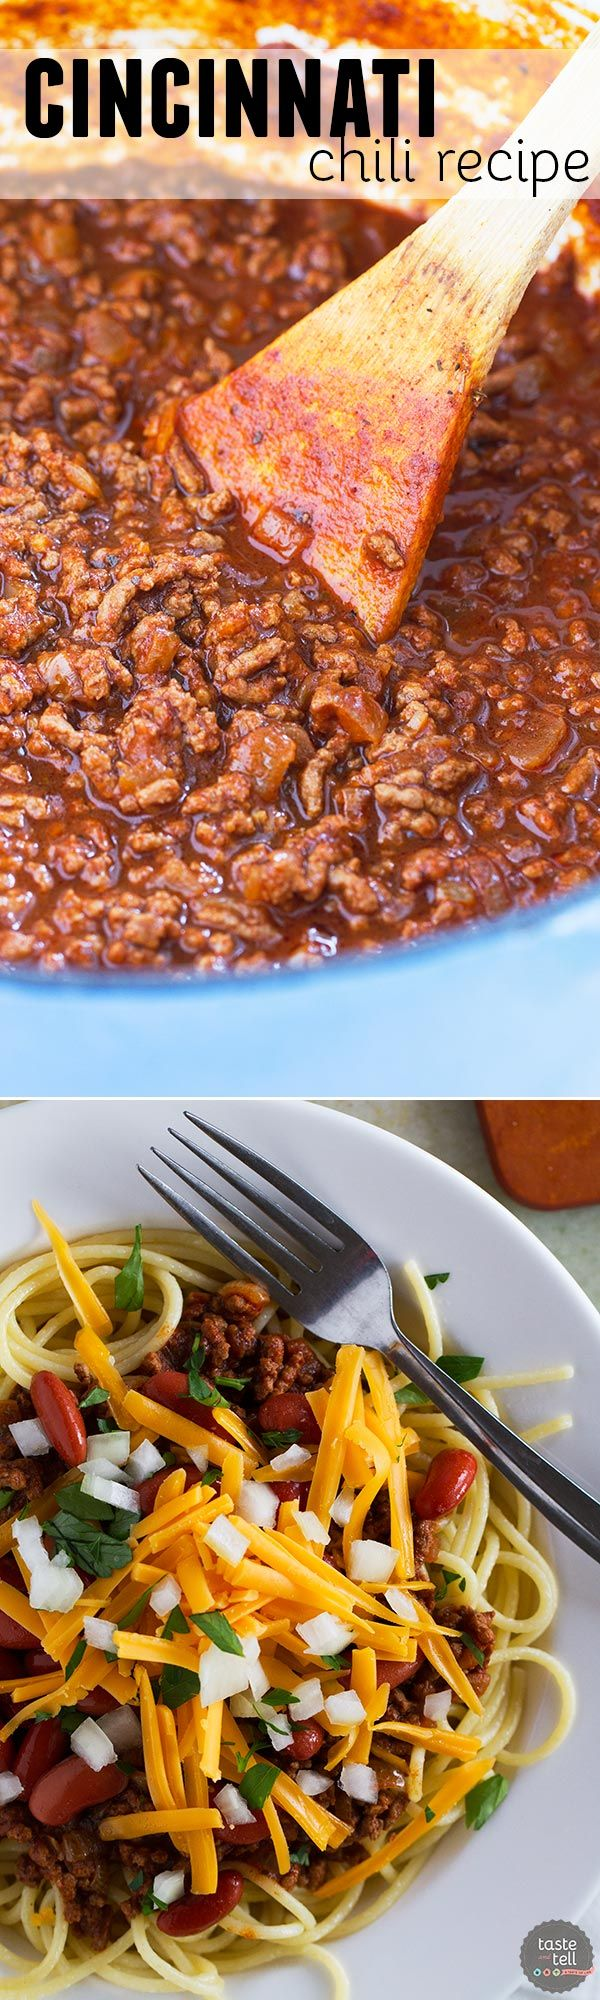 Beef chili is served over spaghetti and topped with beans, cheese and onion in this traditional Cincinnati Chili Recipe.: